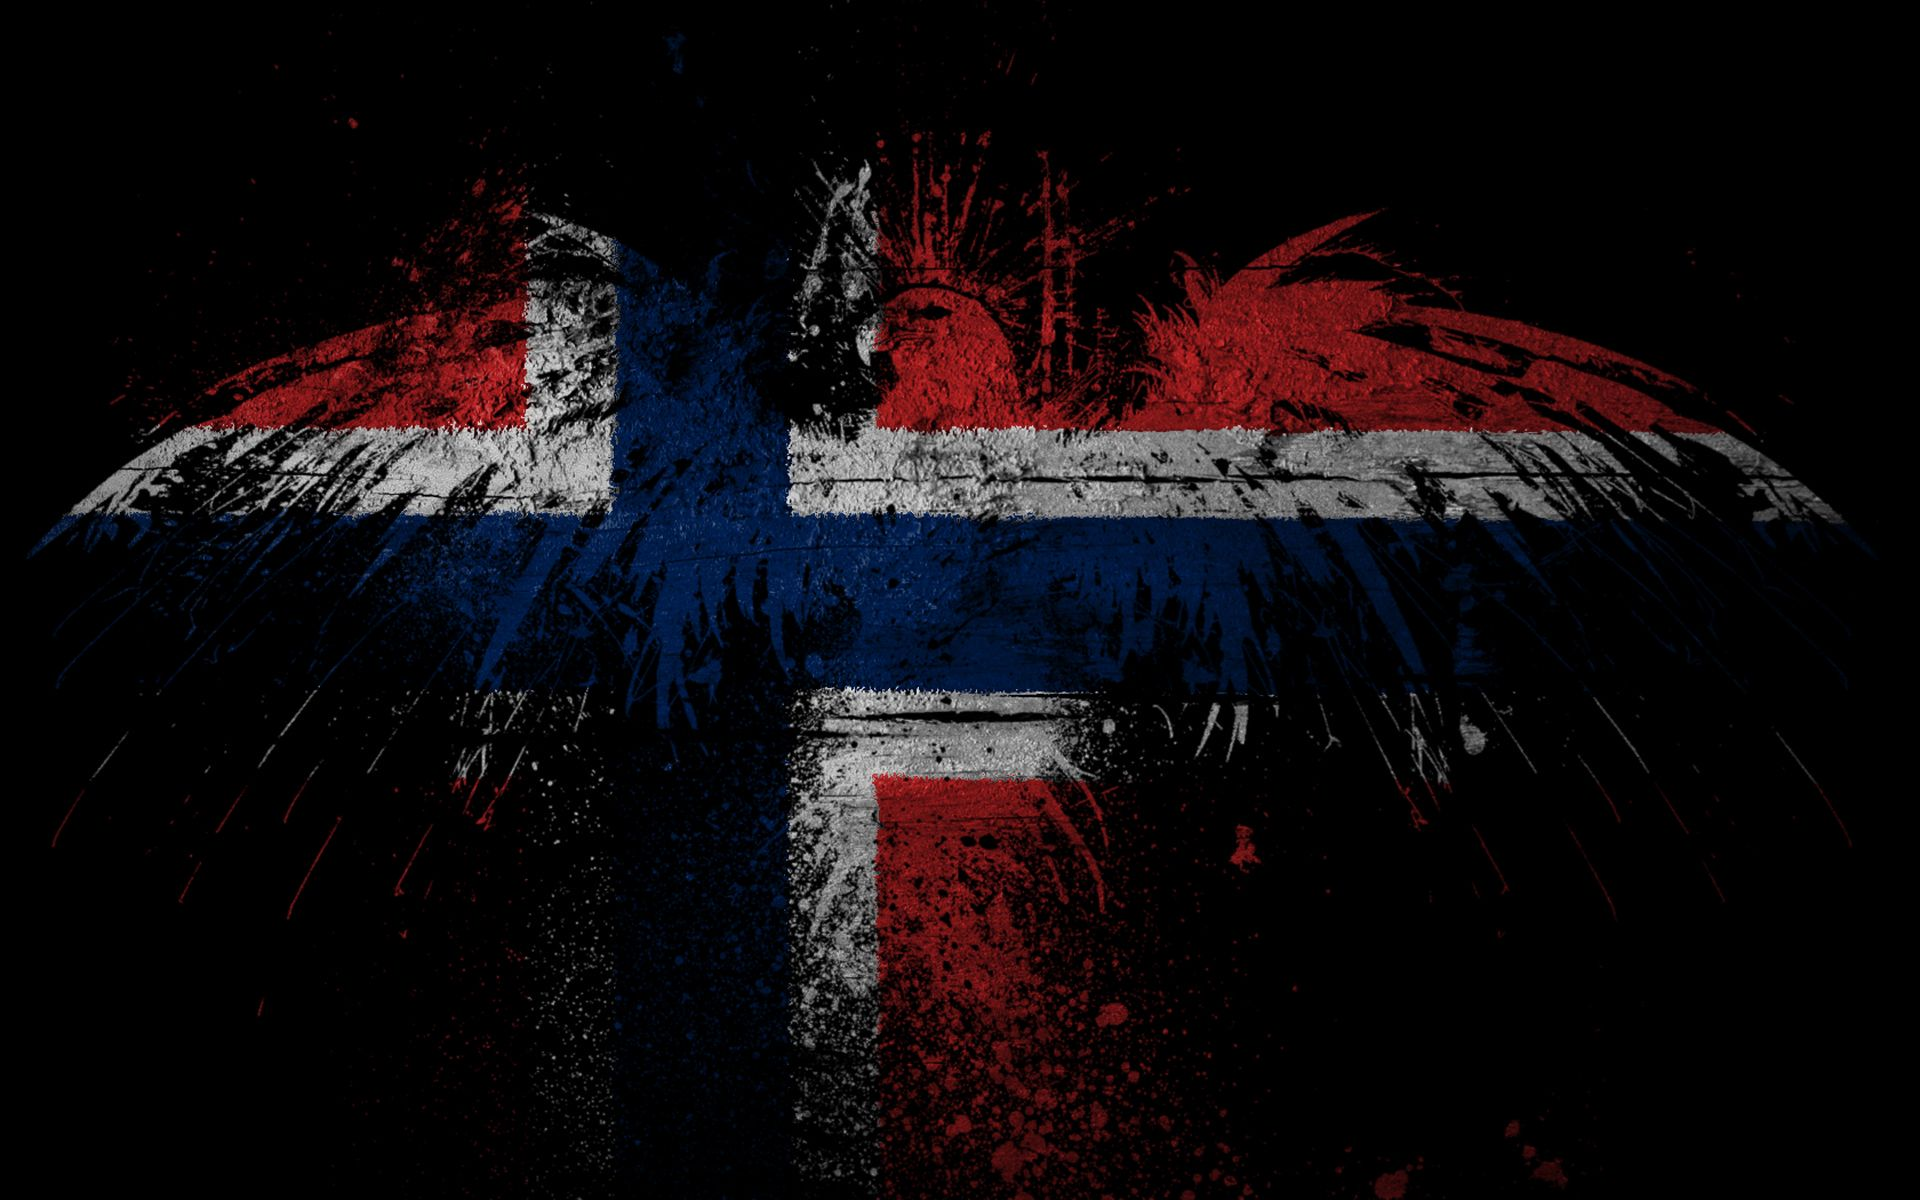 1920x1200 Eagles Norway flags wallpaper | 1920x1200 | 188746 | WallpaperUP